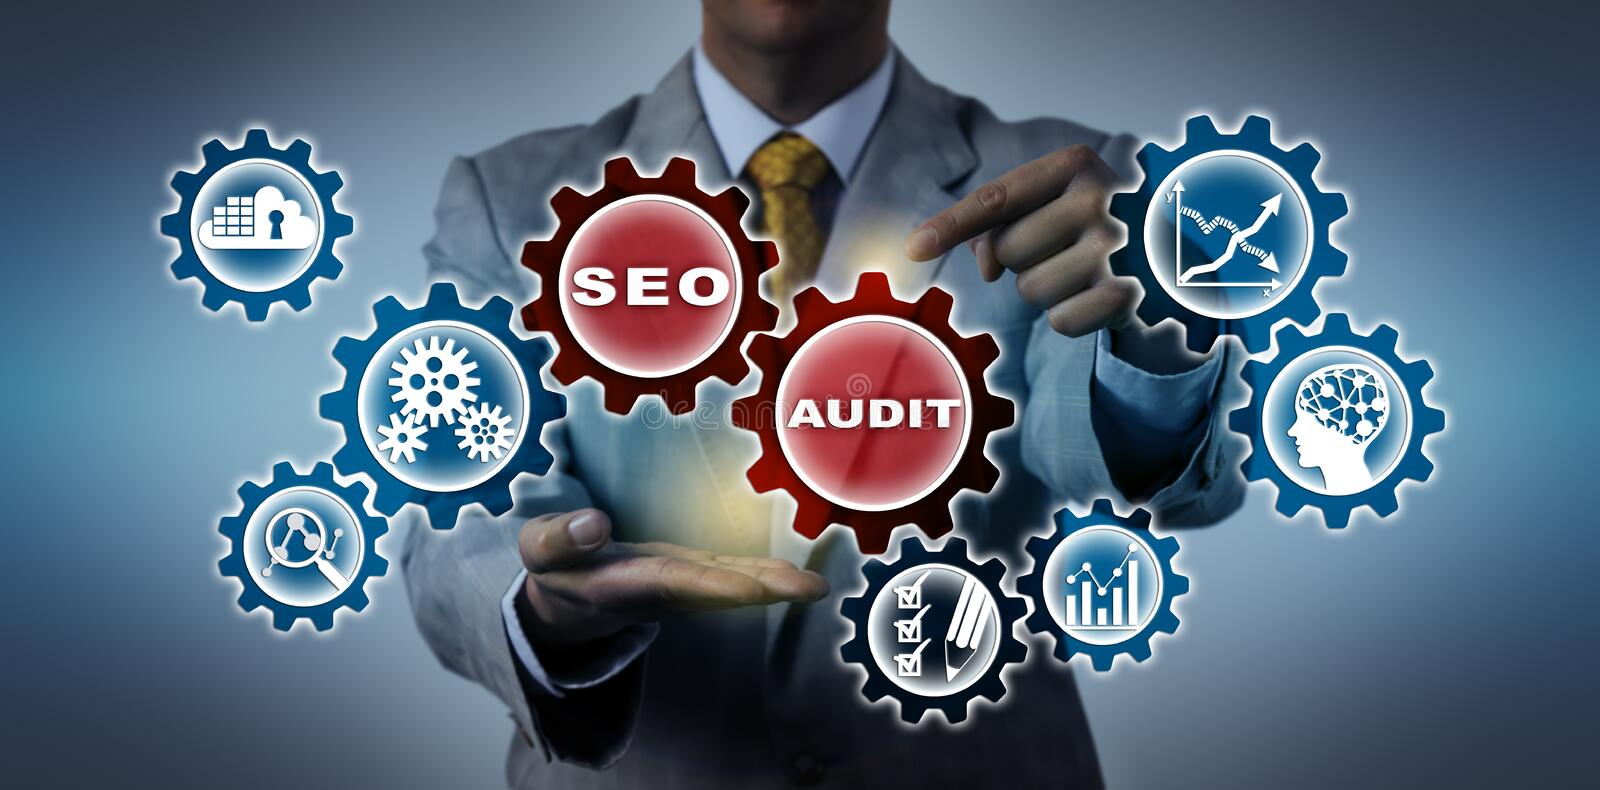 AUDIT méconnaissable de Reminding Of SEO de comptable photographie stock